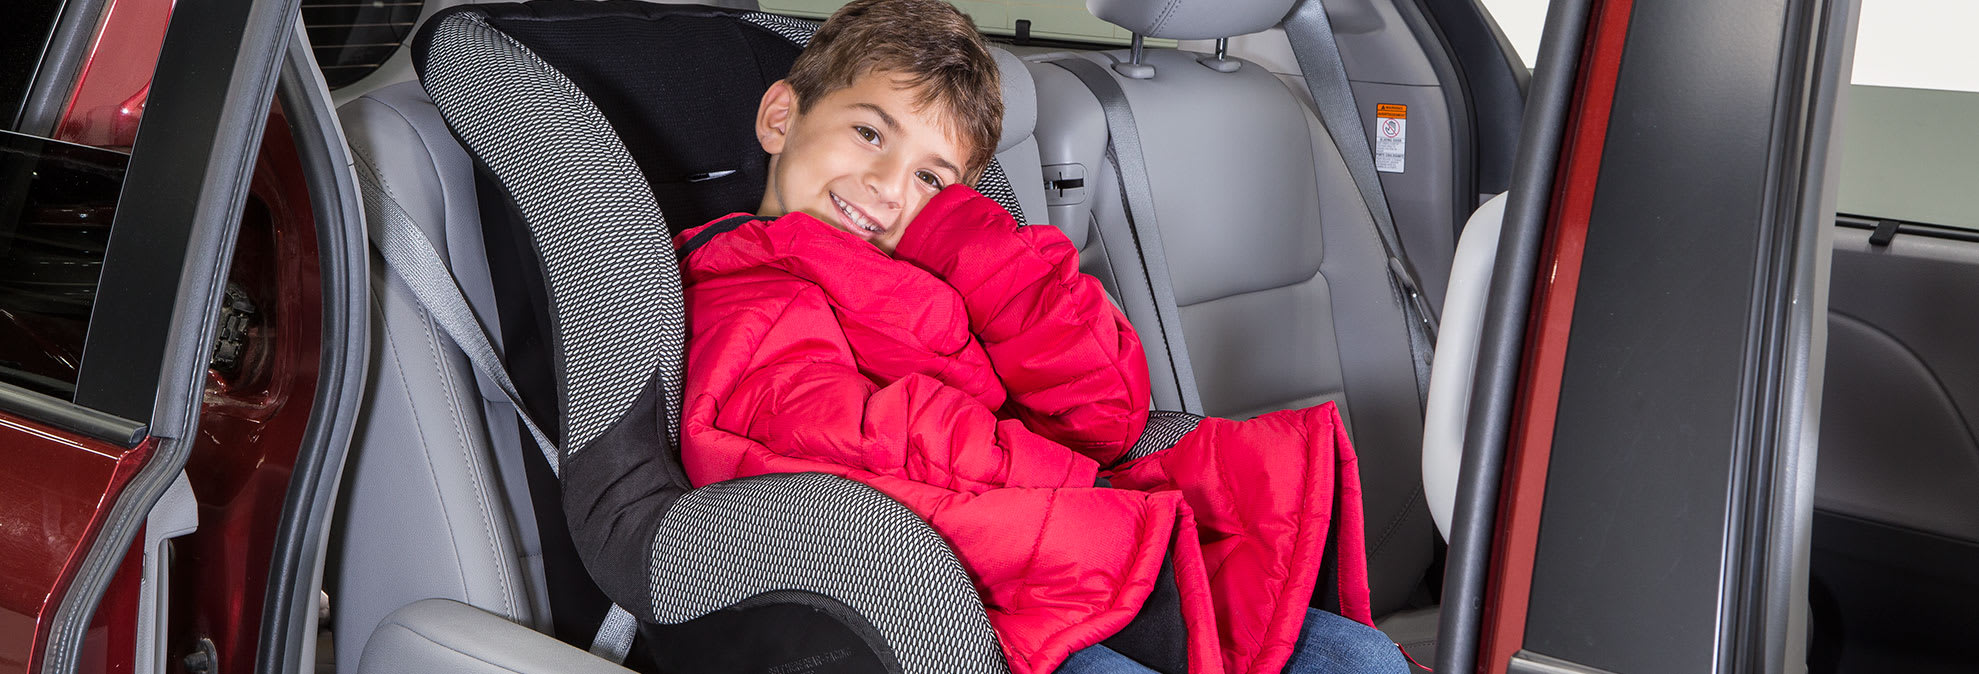 b0da754ae336 The Dangers of Winter Coats and Car Seats - Consumer Reports